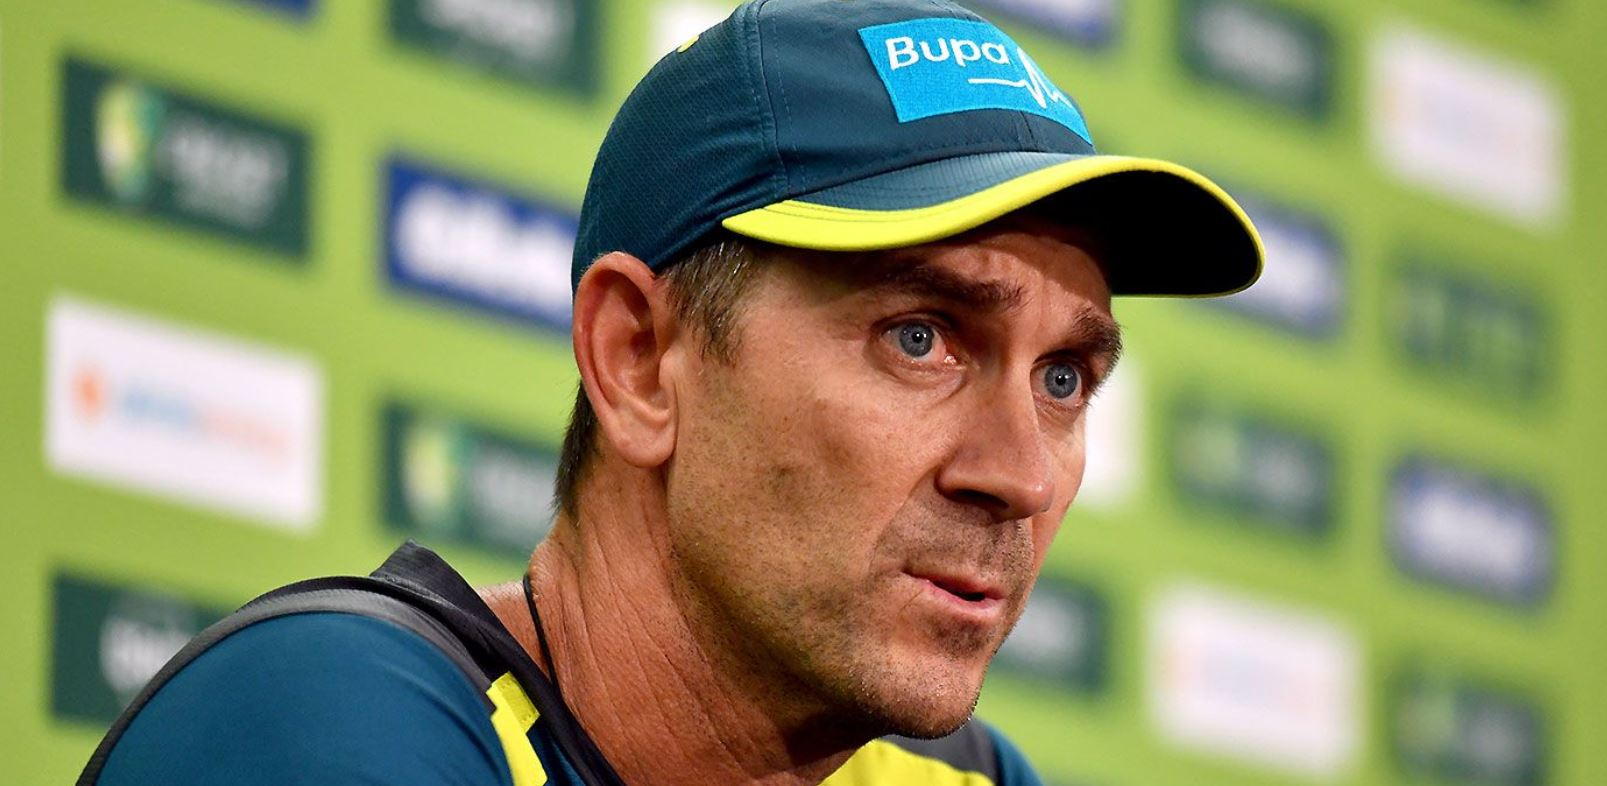 Justin Langer (Australian Cricket Team Head Coach)